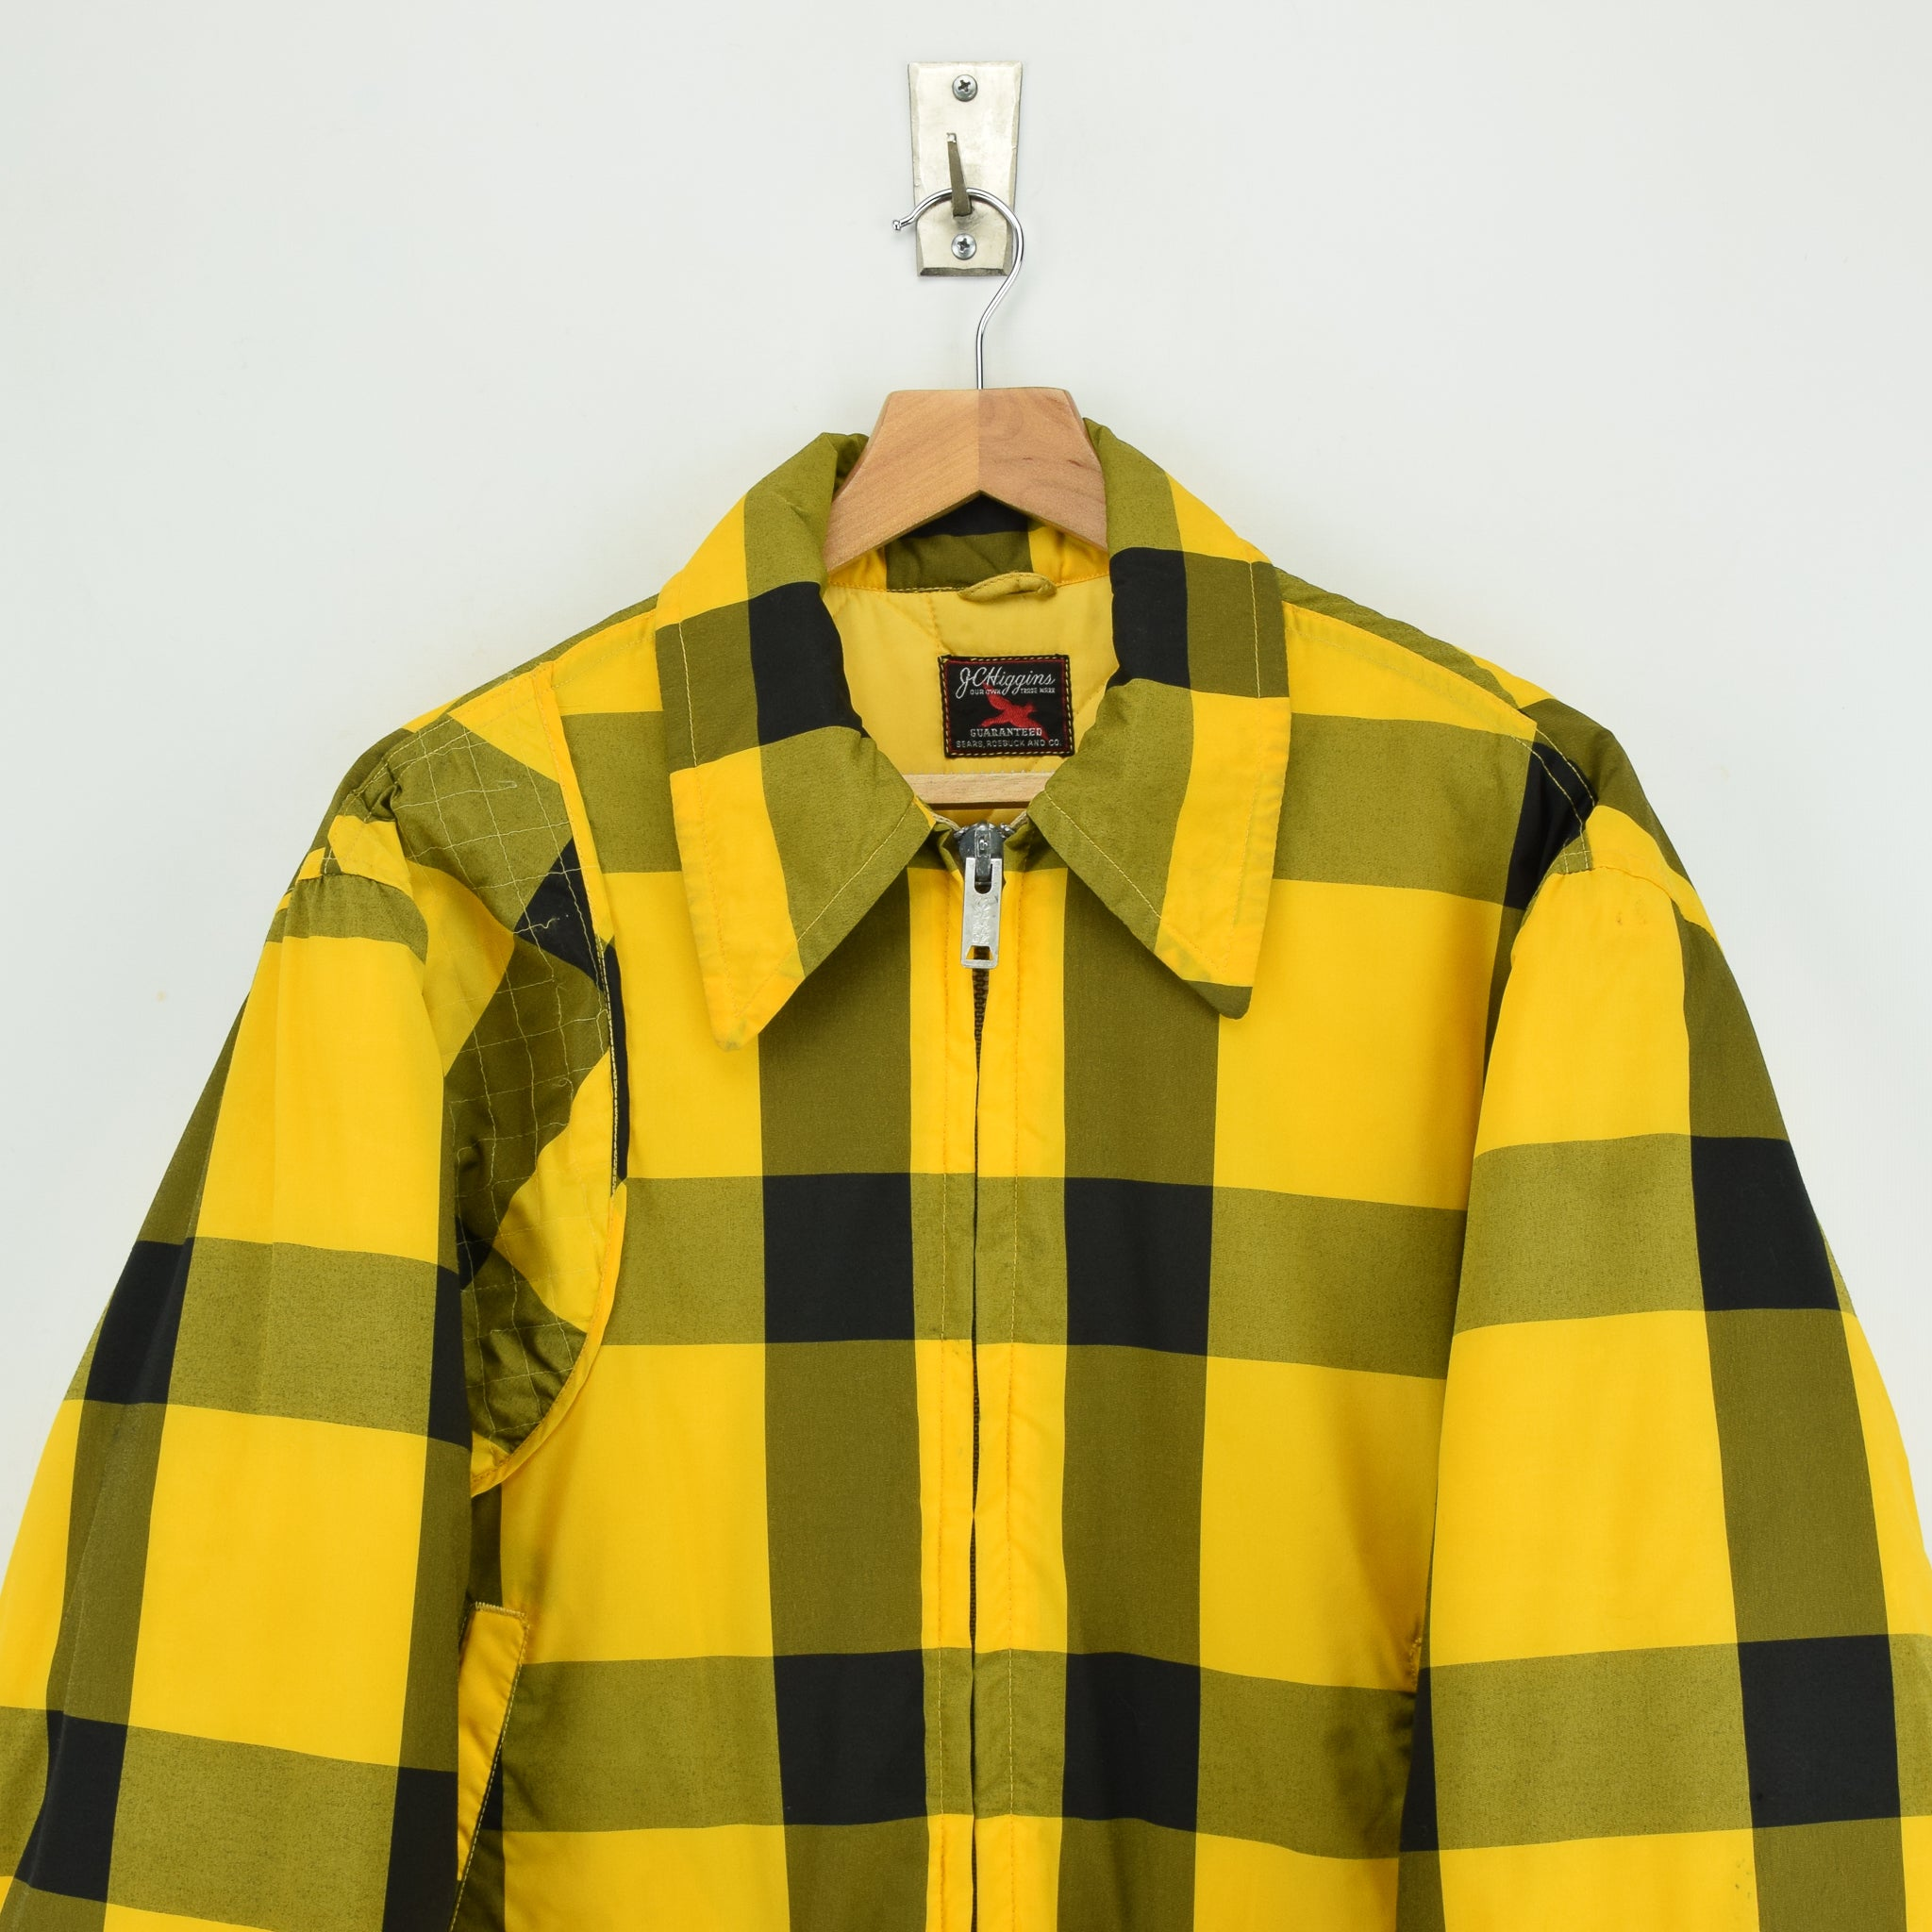 Vintage Sears Plaid Check Yellow Hunting Style Jacket Made in USA L chest